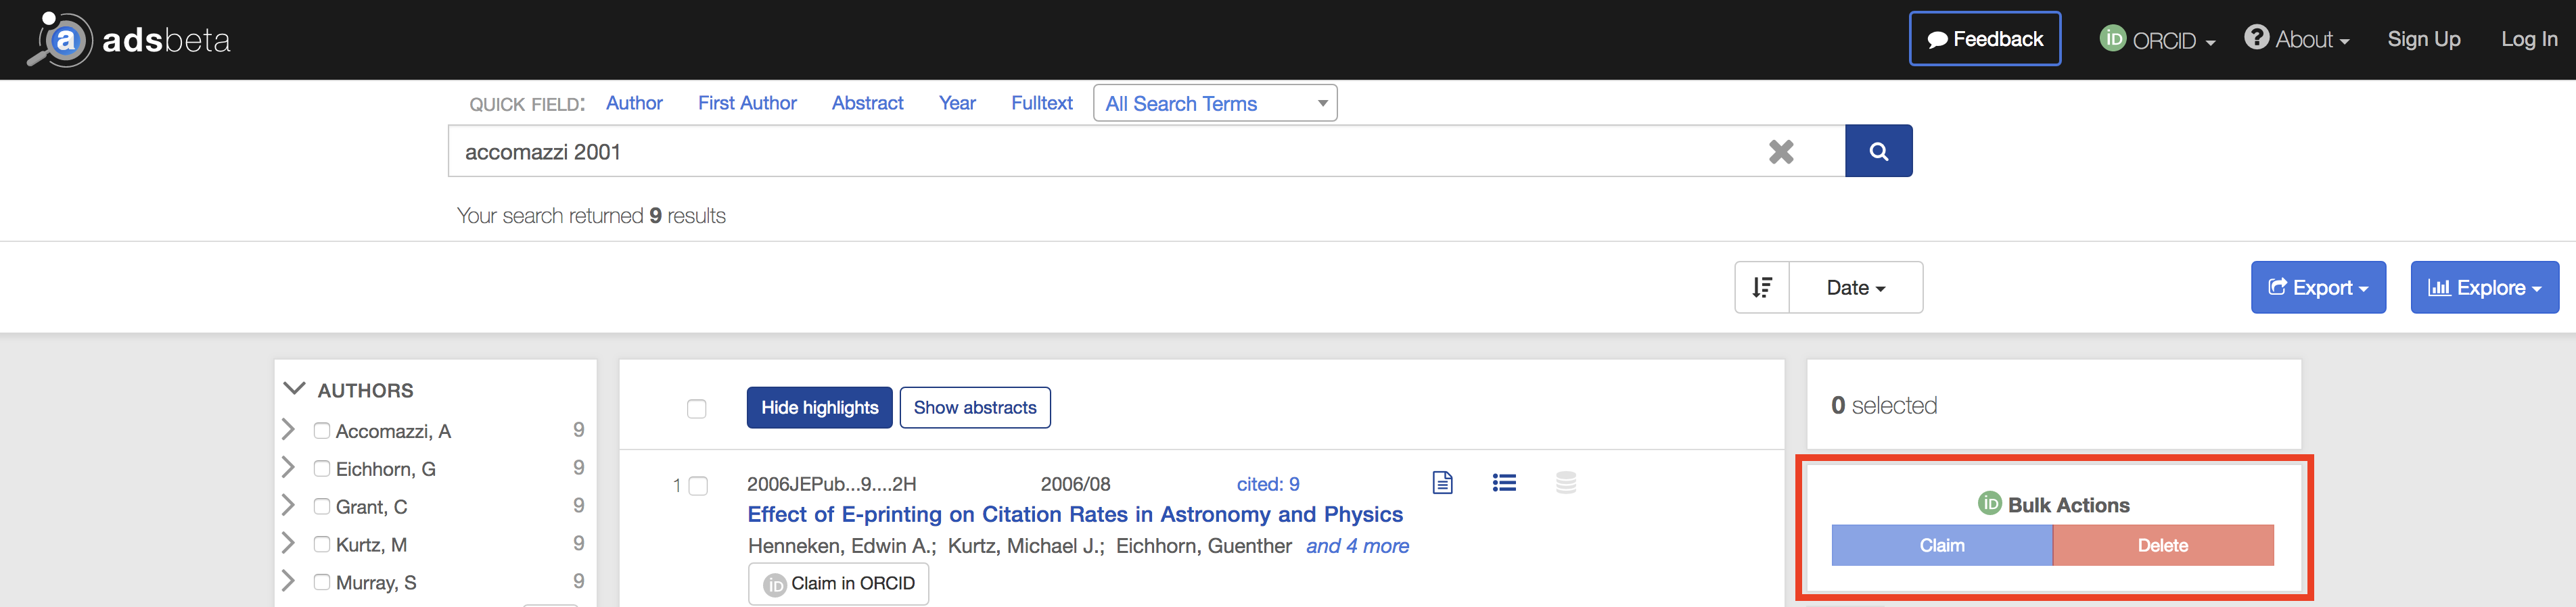 ORCID bulk action selection in the righthand column of the search results page